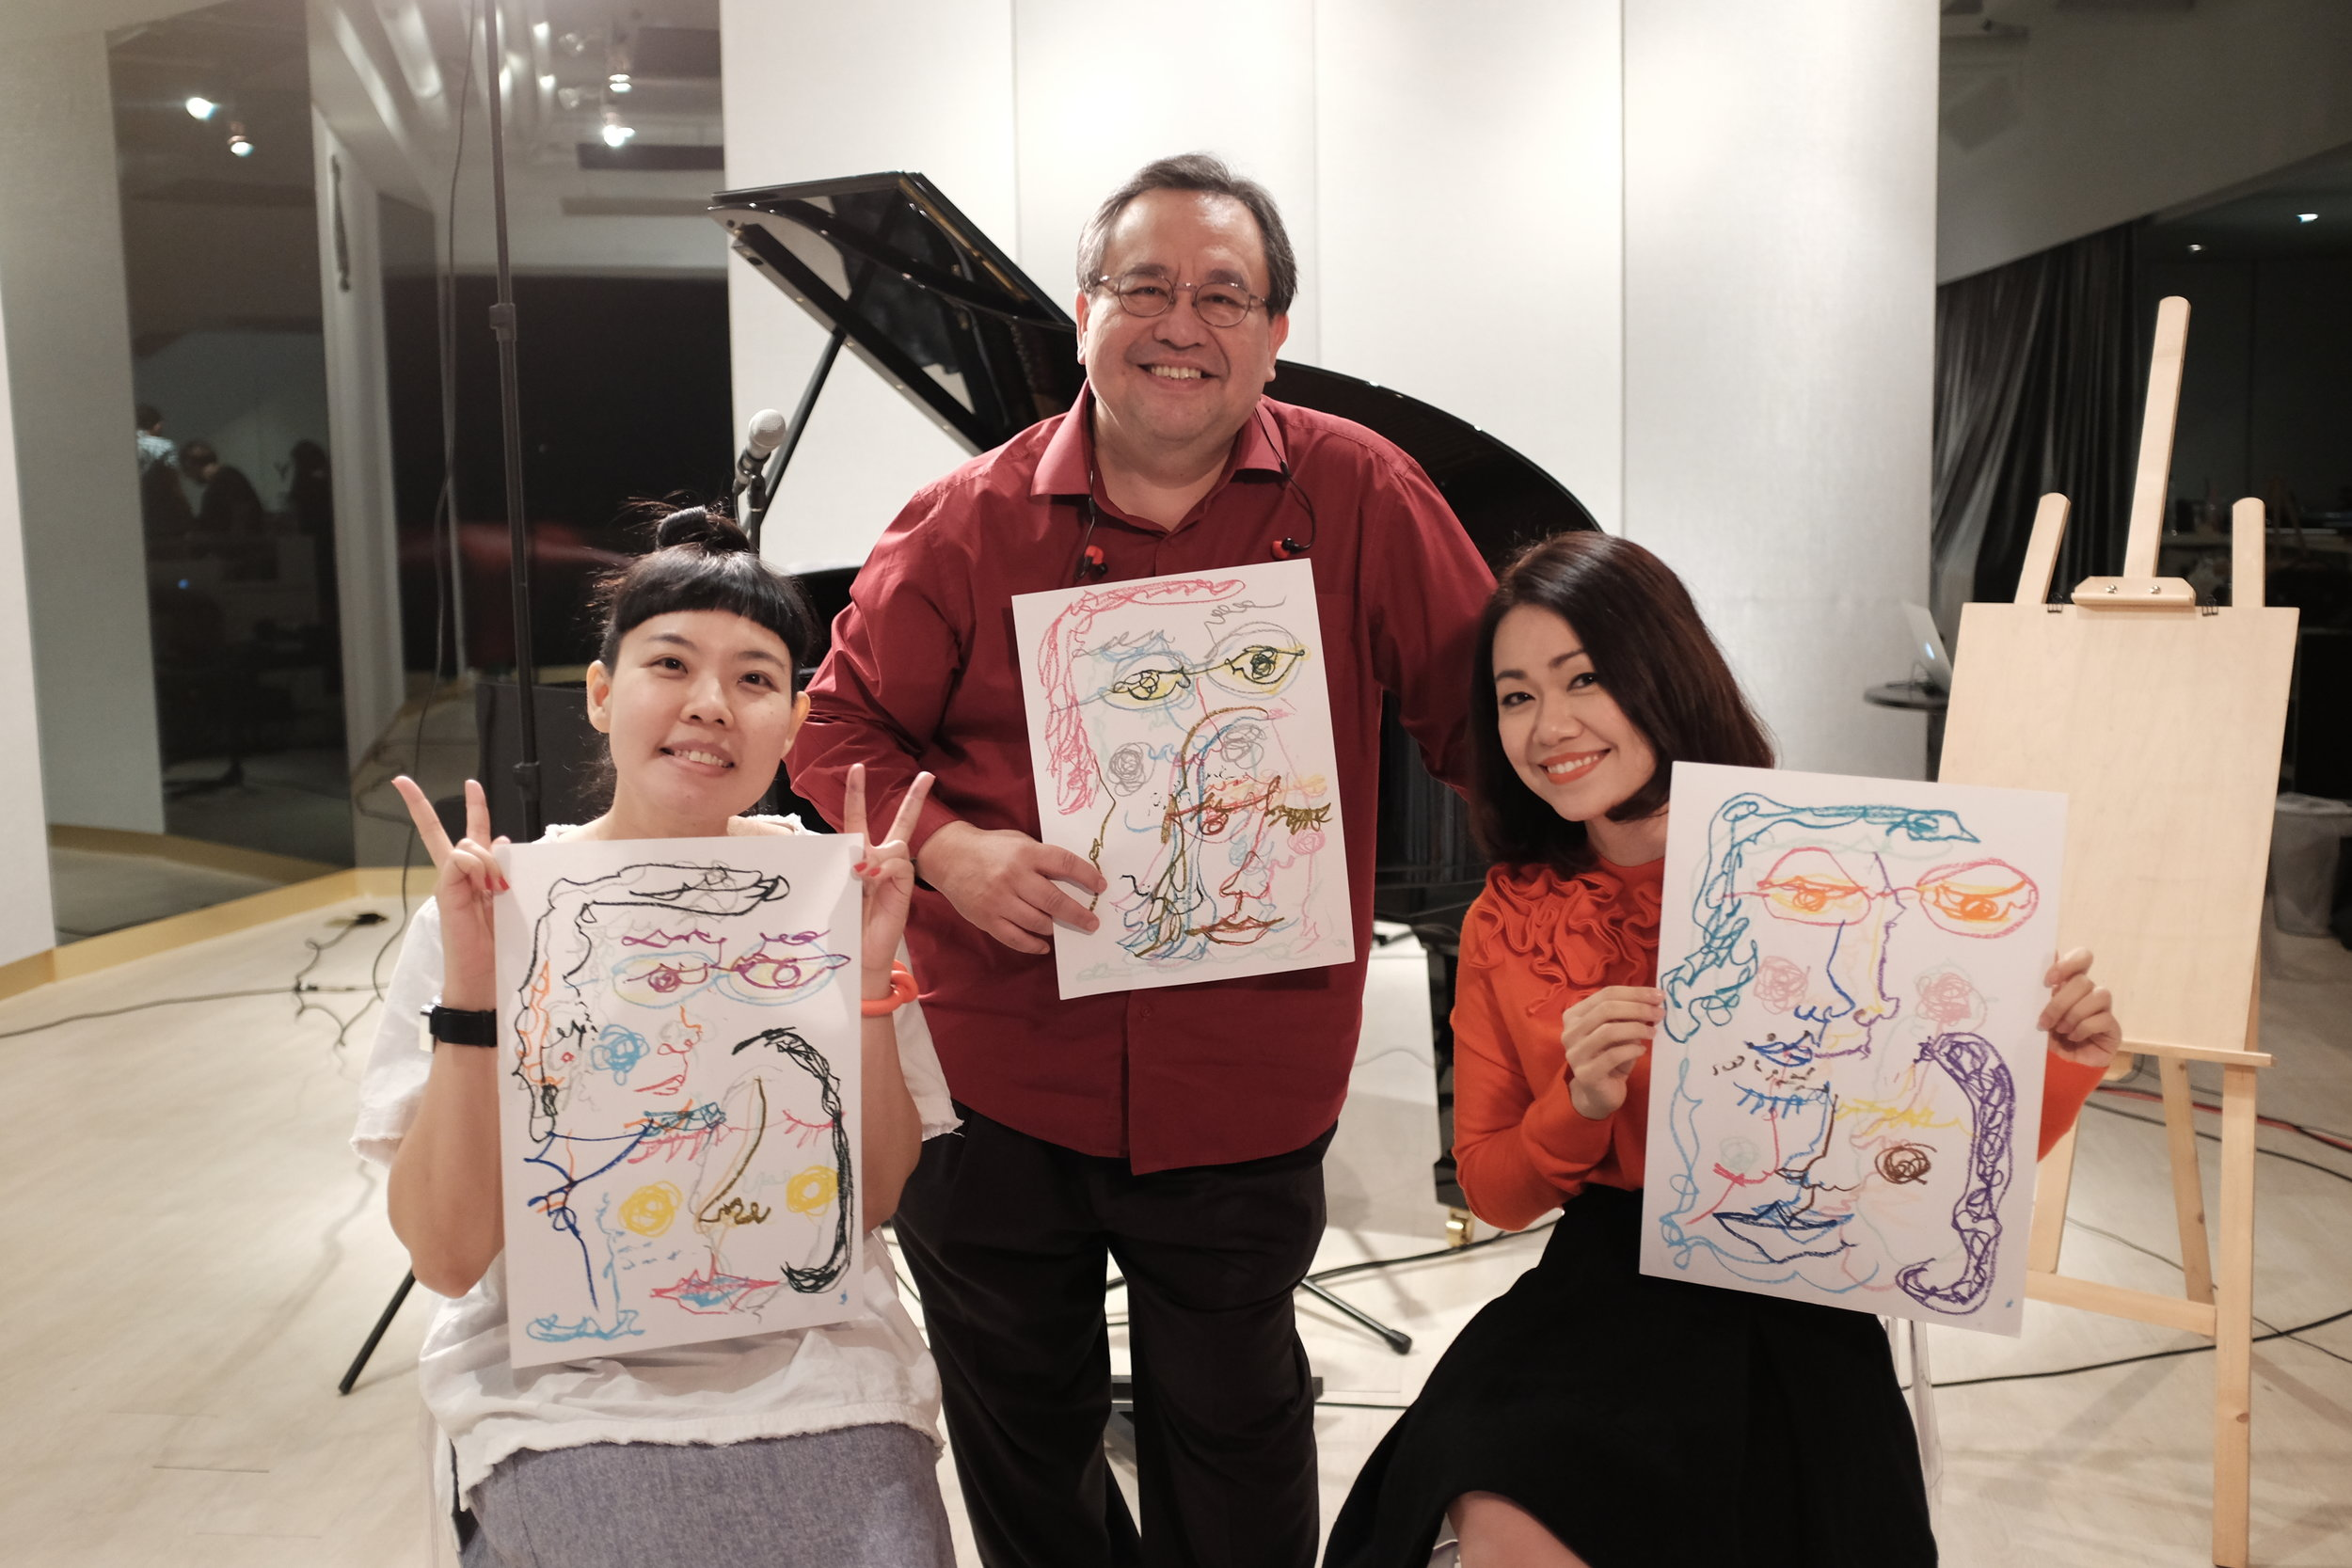 Pianist Jeremy monteiro (middle), singer joanna dong (right), and artist noreen loh (left).Photography by Nicholas tang.